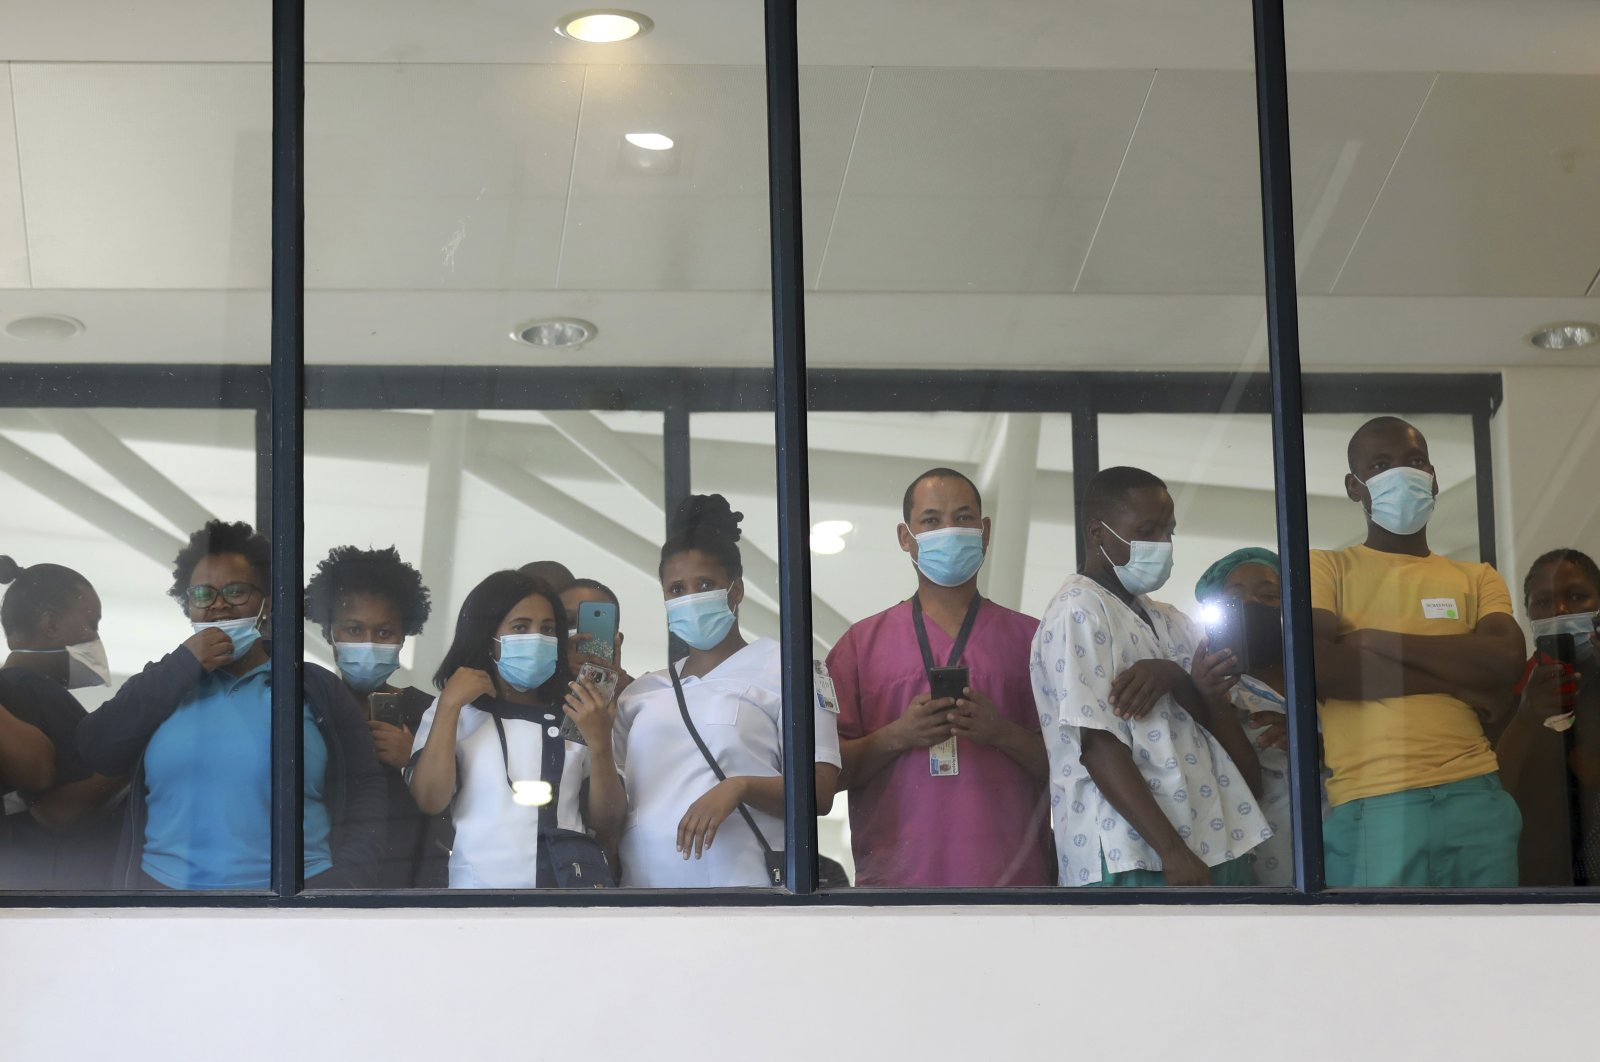 Health care workers look through a window at a hospital during the rollout of the first batch of Johnson and Johnson vaccines in the country, in Khayelitsha, Cape Town, South Africa, Feb. 17, 2021. (AP Photo)